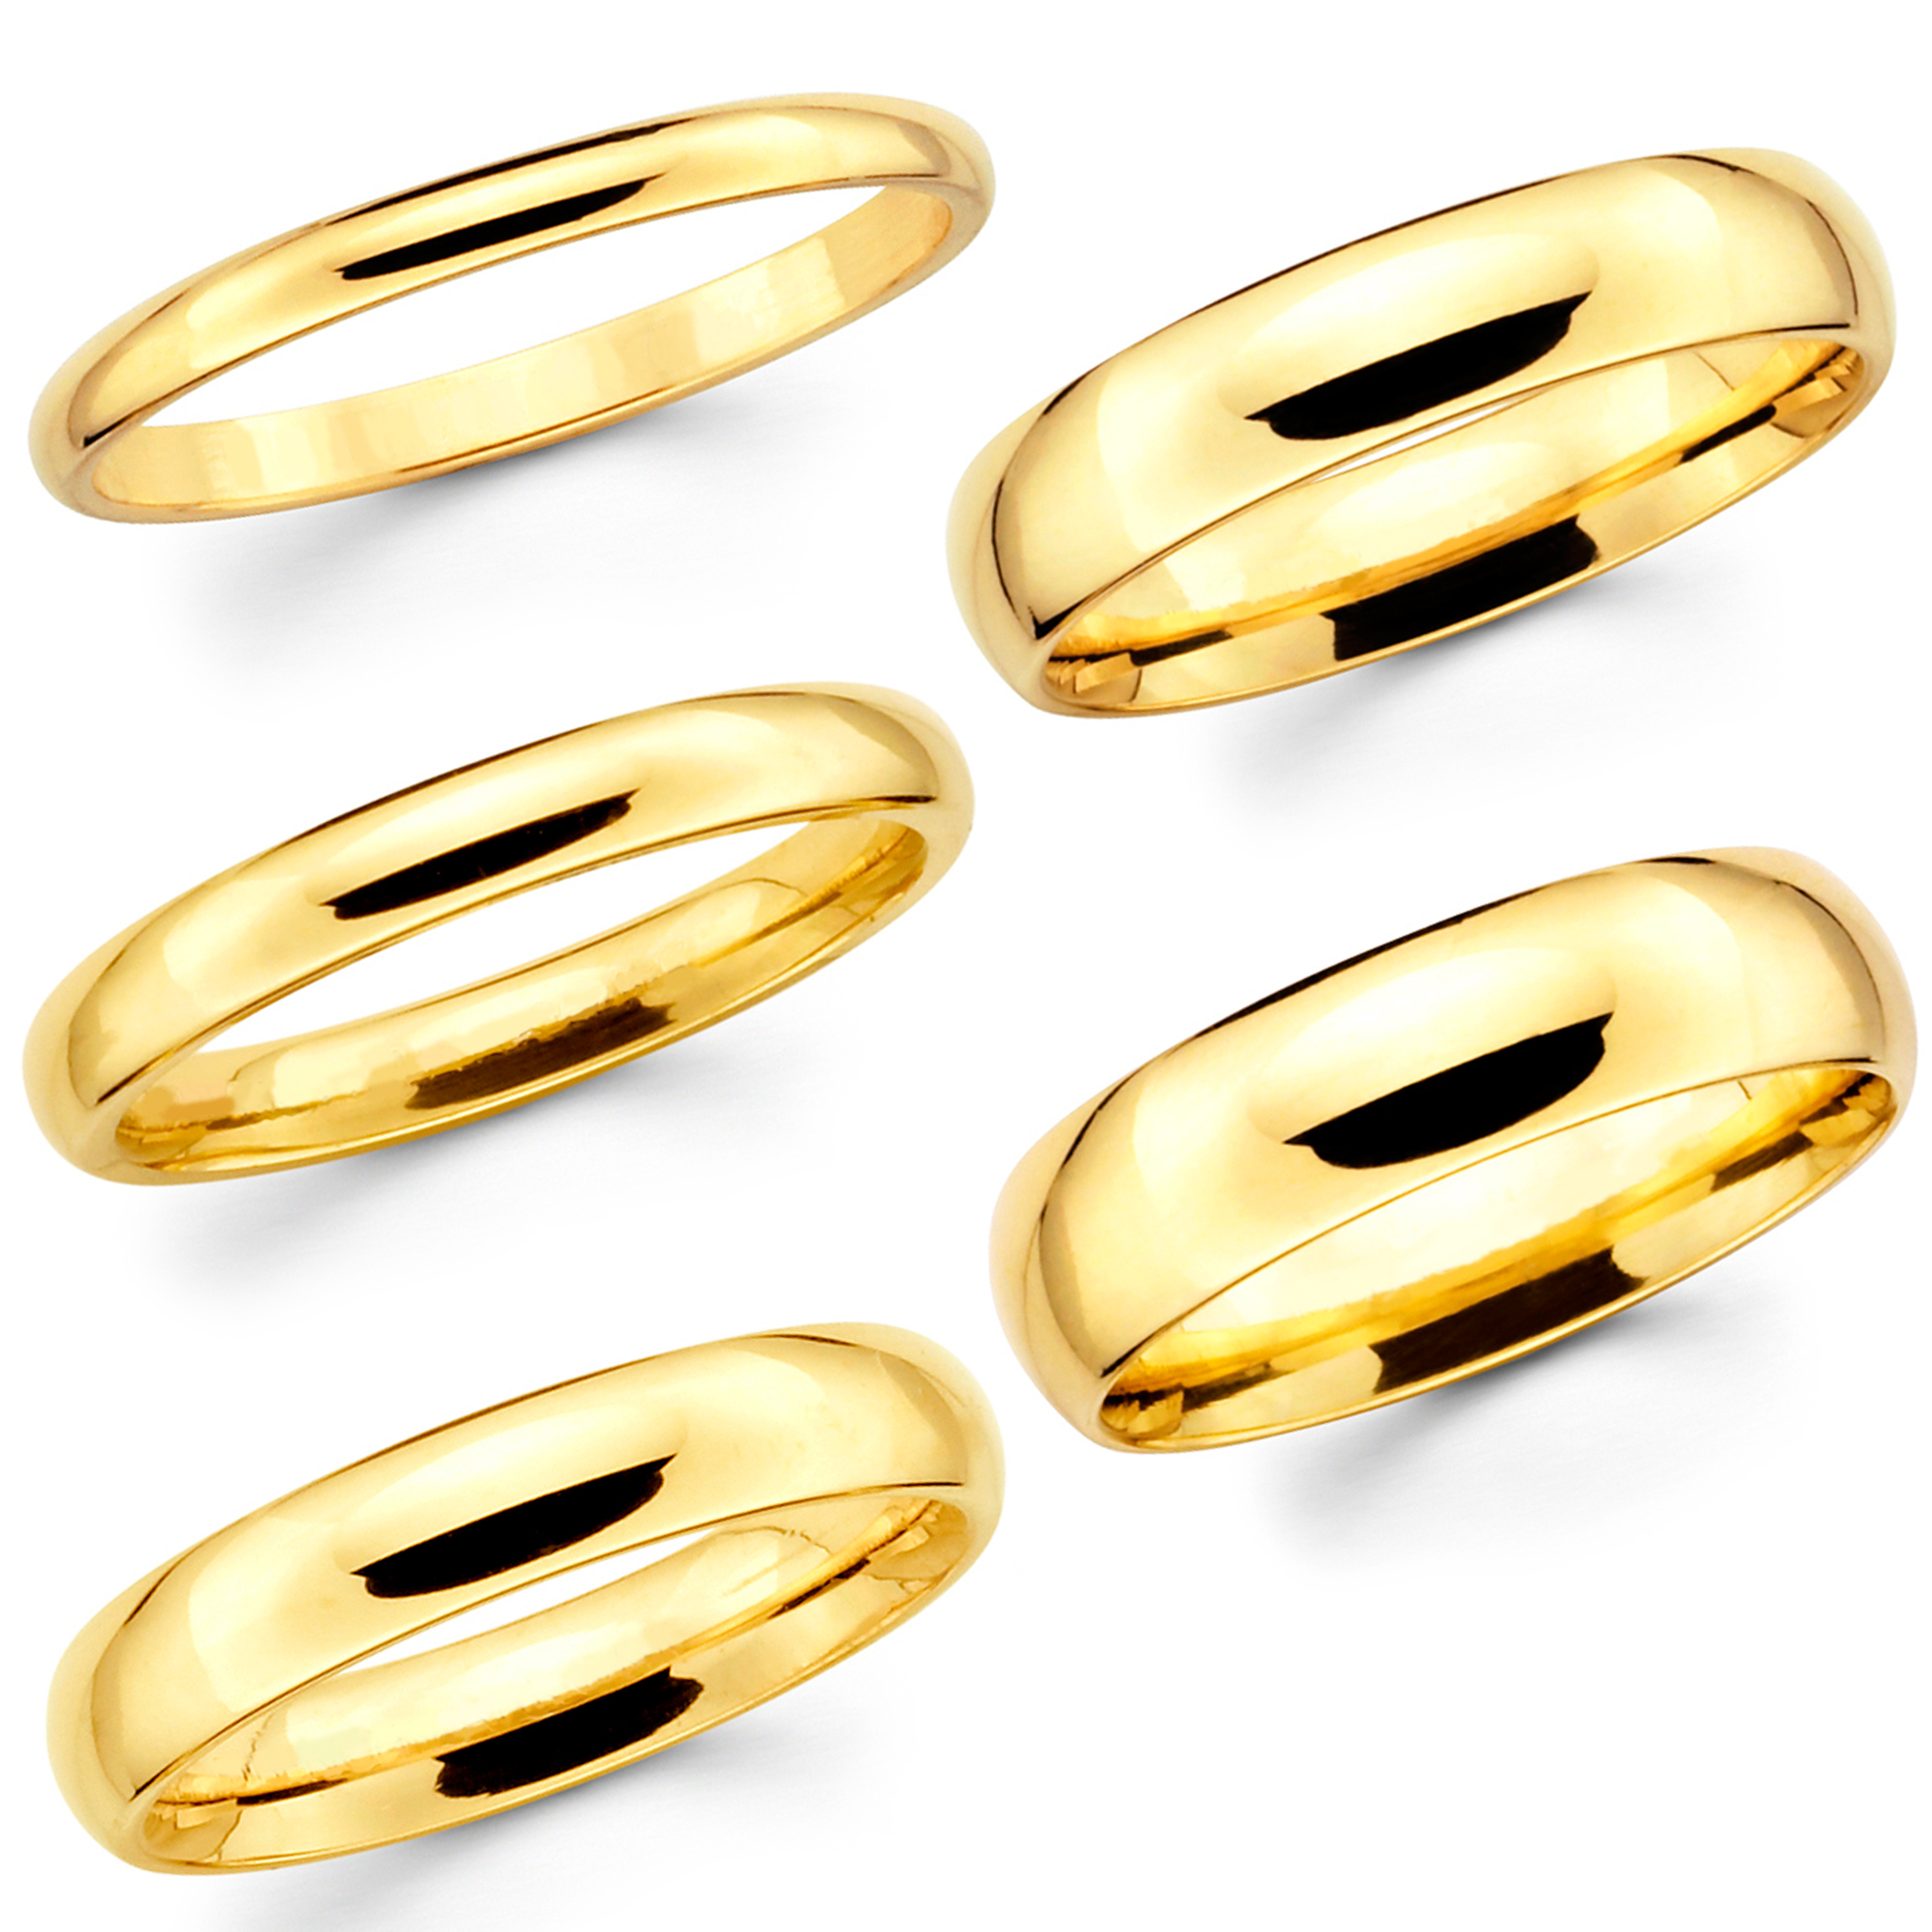 sebastian gold previous rings in ring lunette yellow by products sarah month